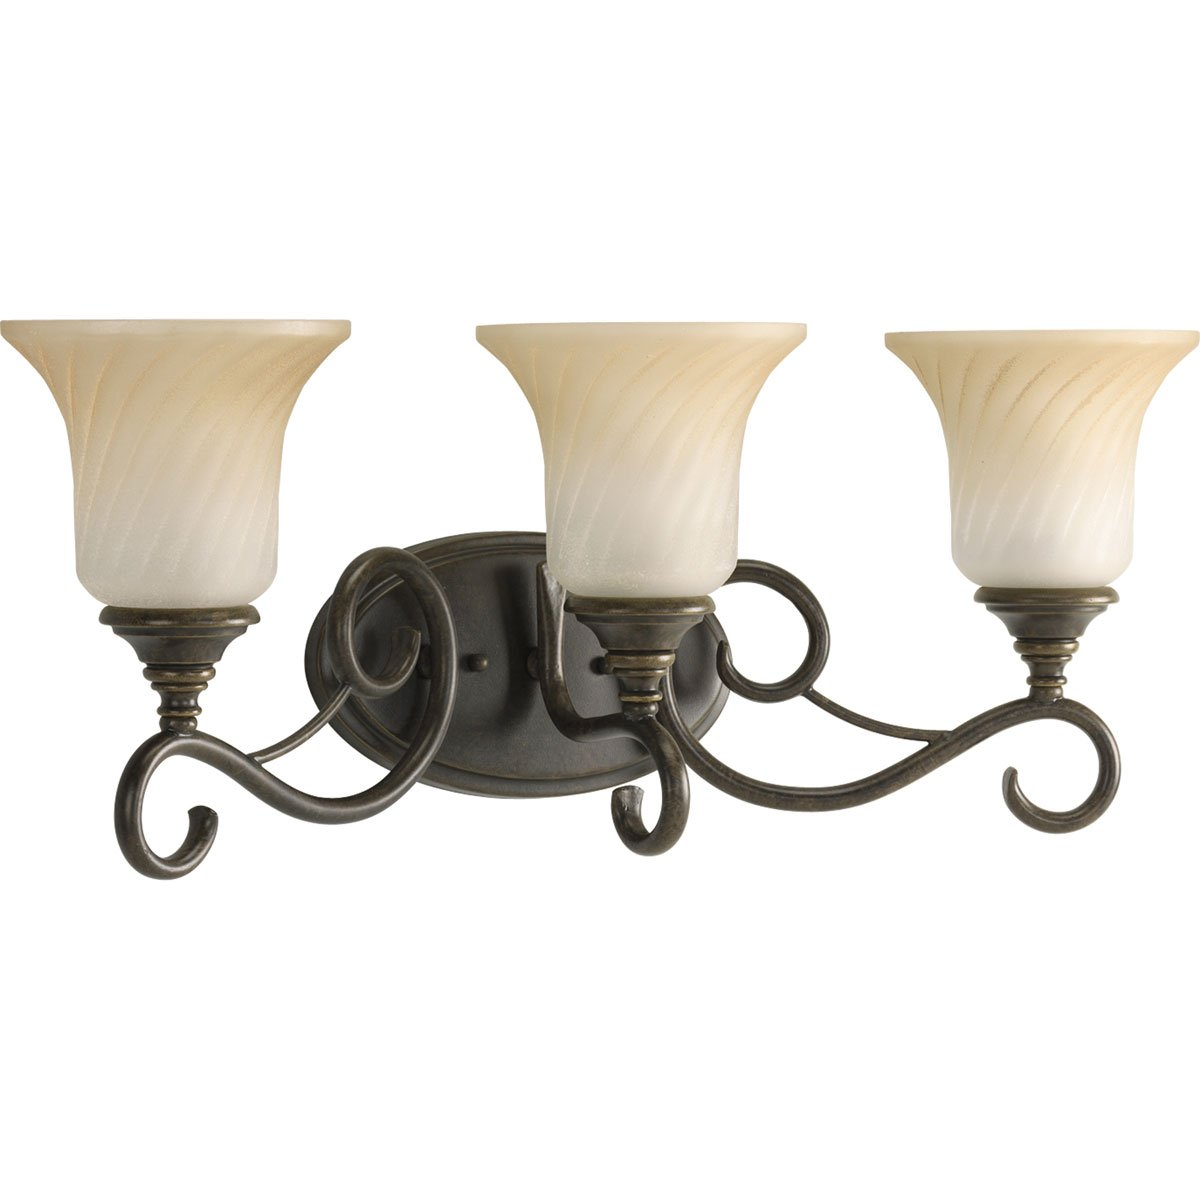 Progress Lighting P2785-77 3-Light Bath Features Scrolled Metalwork with Trumpet-Shaped Textured Glass Shades, Forged Bronze